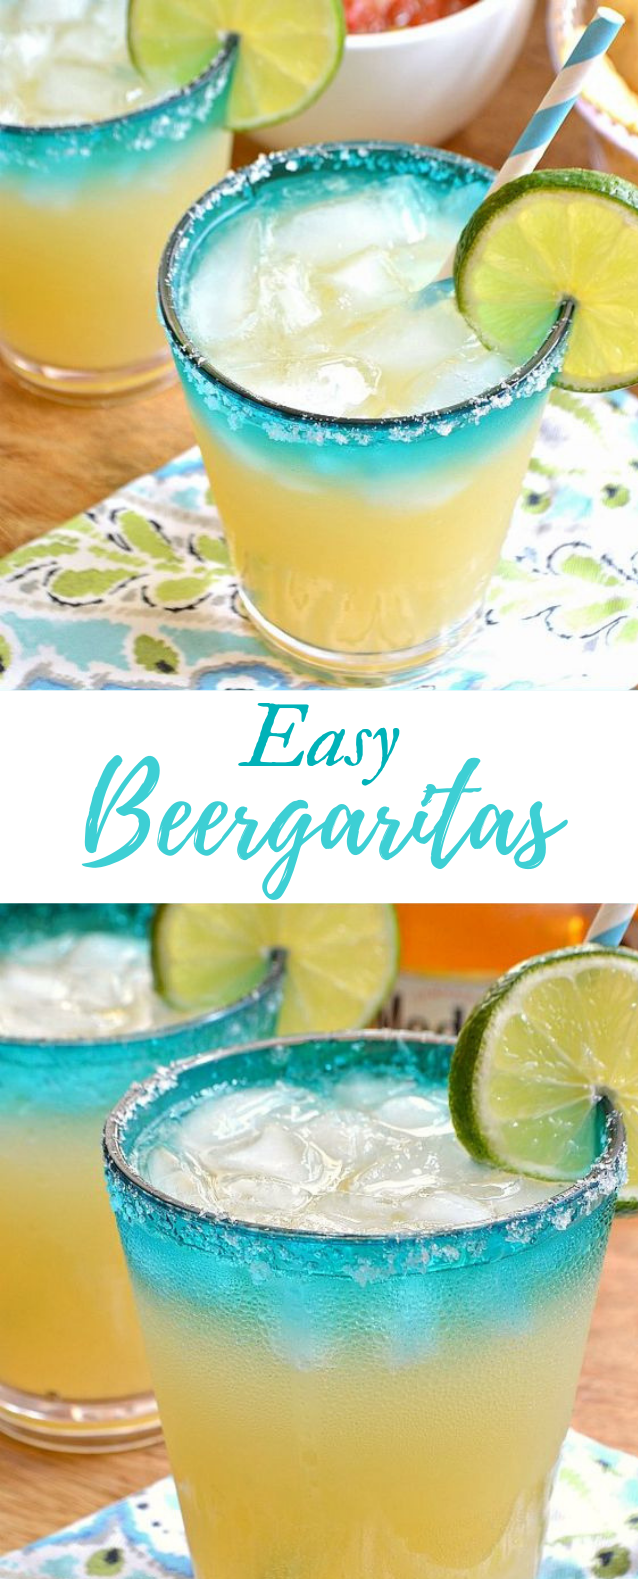 EASY BEERGARITAS #Drink #Beer